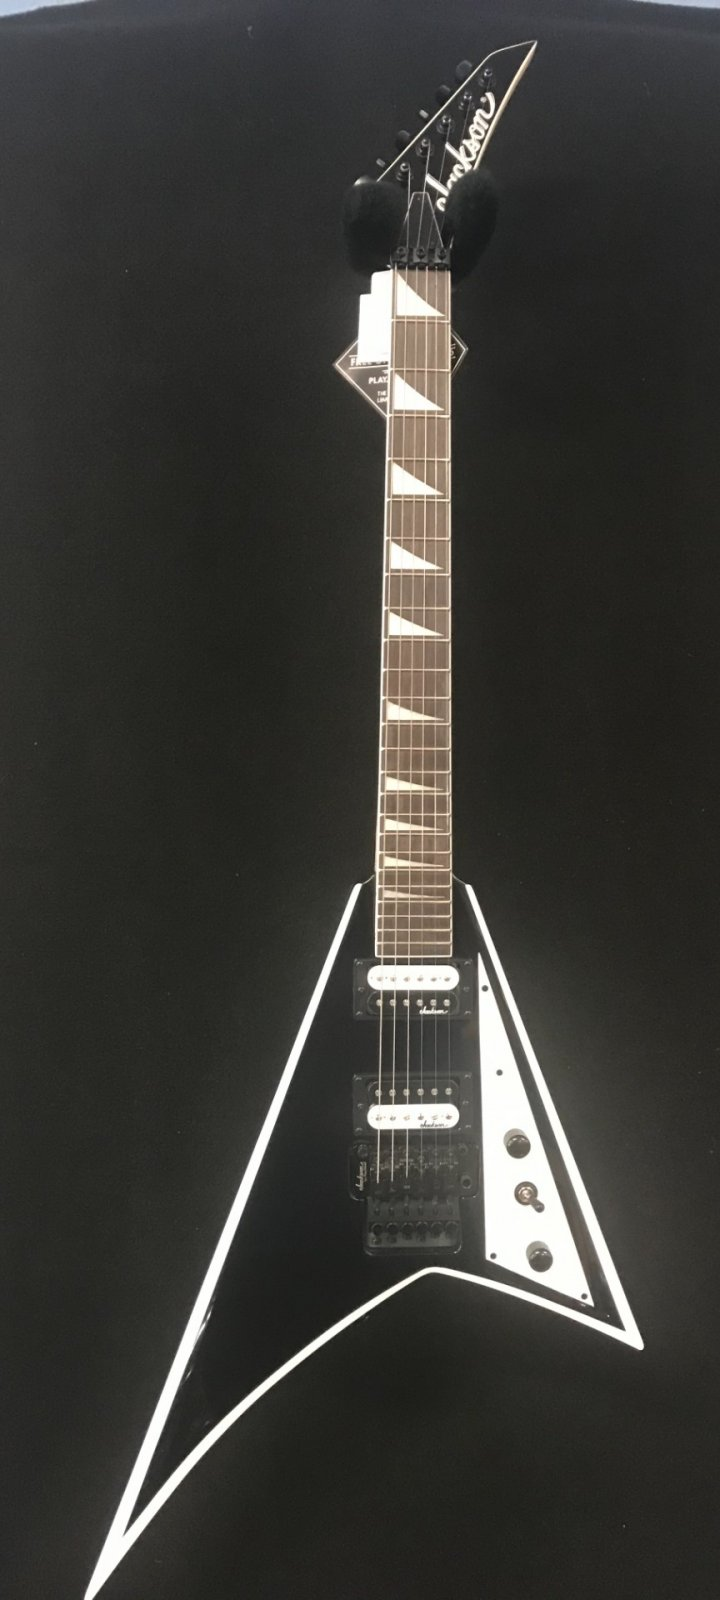 Jackson JS32 Randy Rhoads Black/white bevels